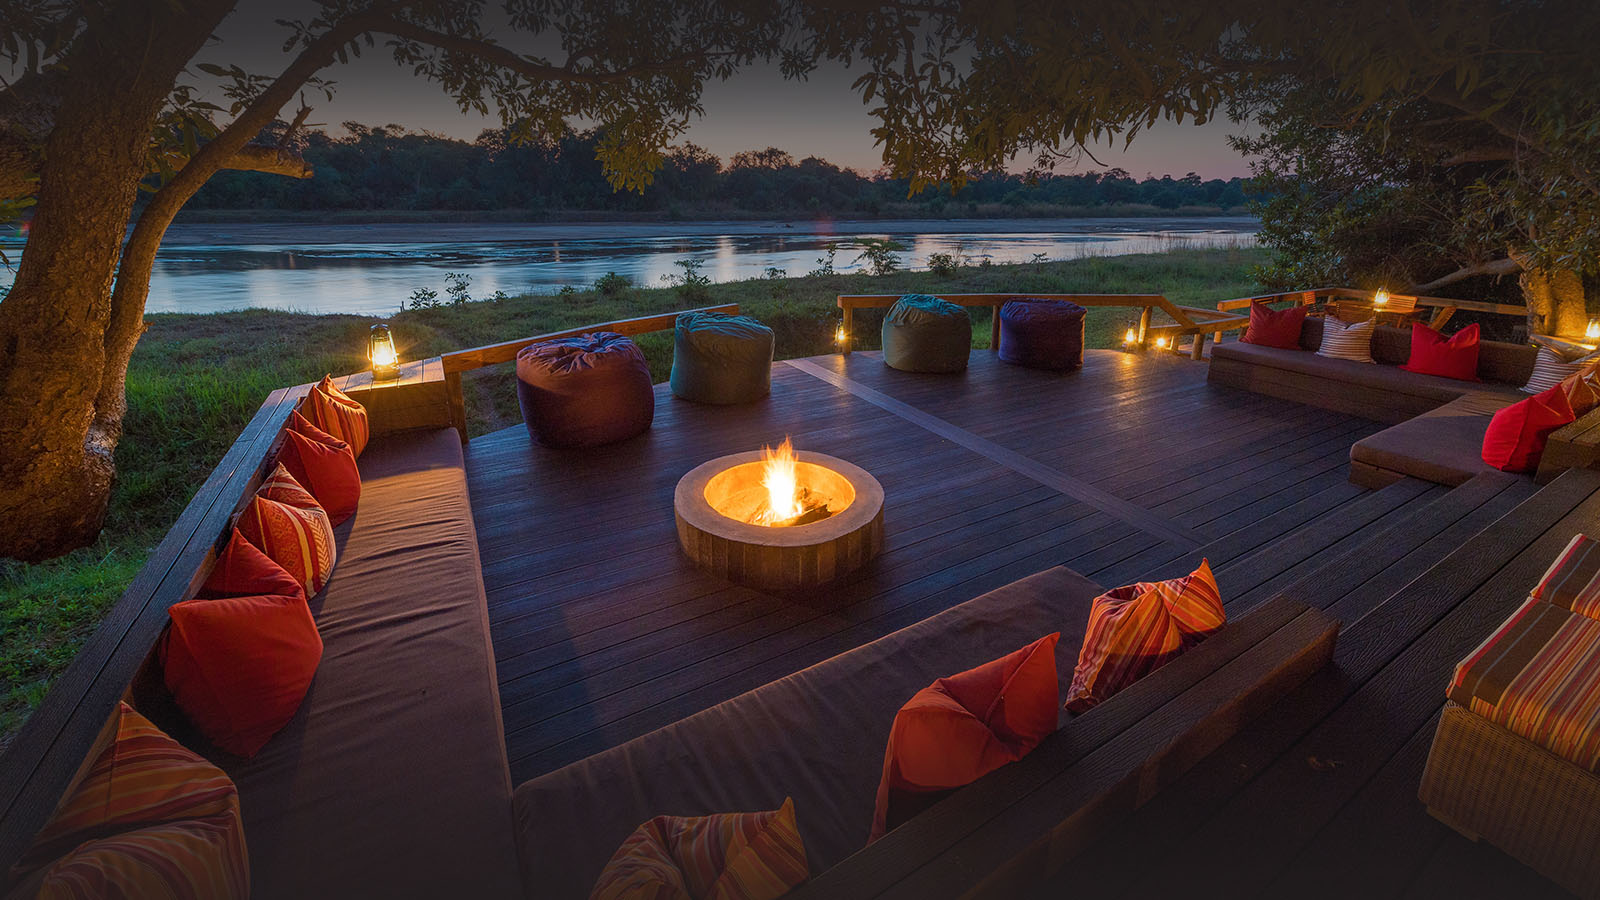 kapamba bushcamp lodge-zambia-in-style-tours-travel-safari-packages-lodges-south-luangwa-national-park-lounge-outdoors